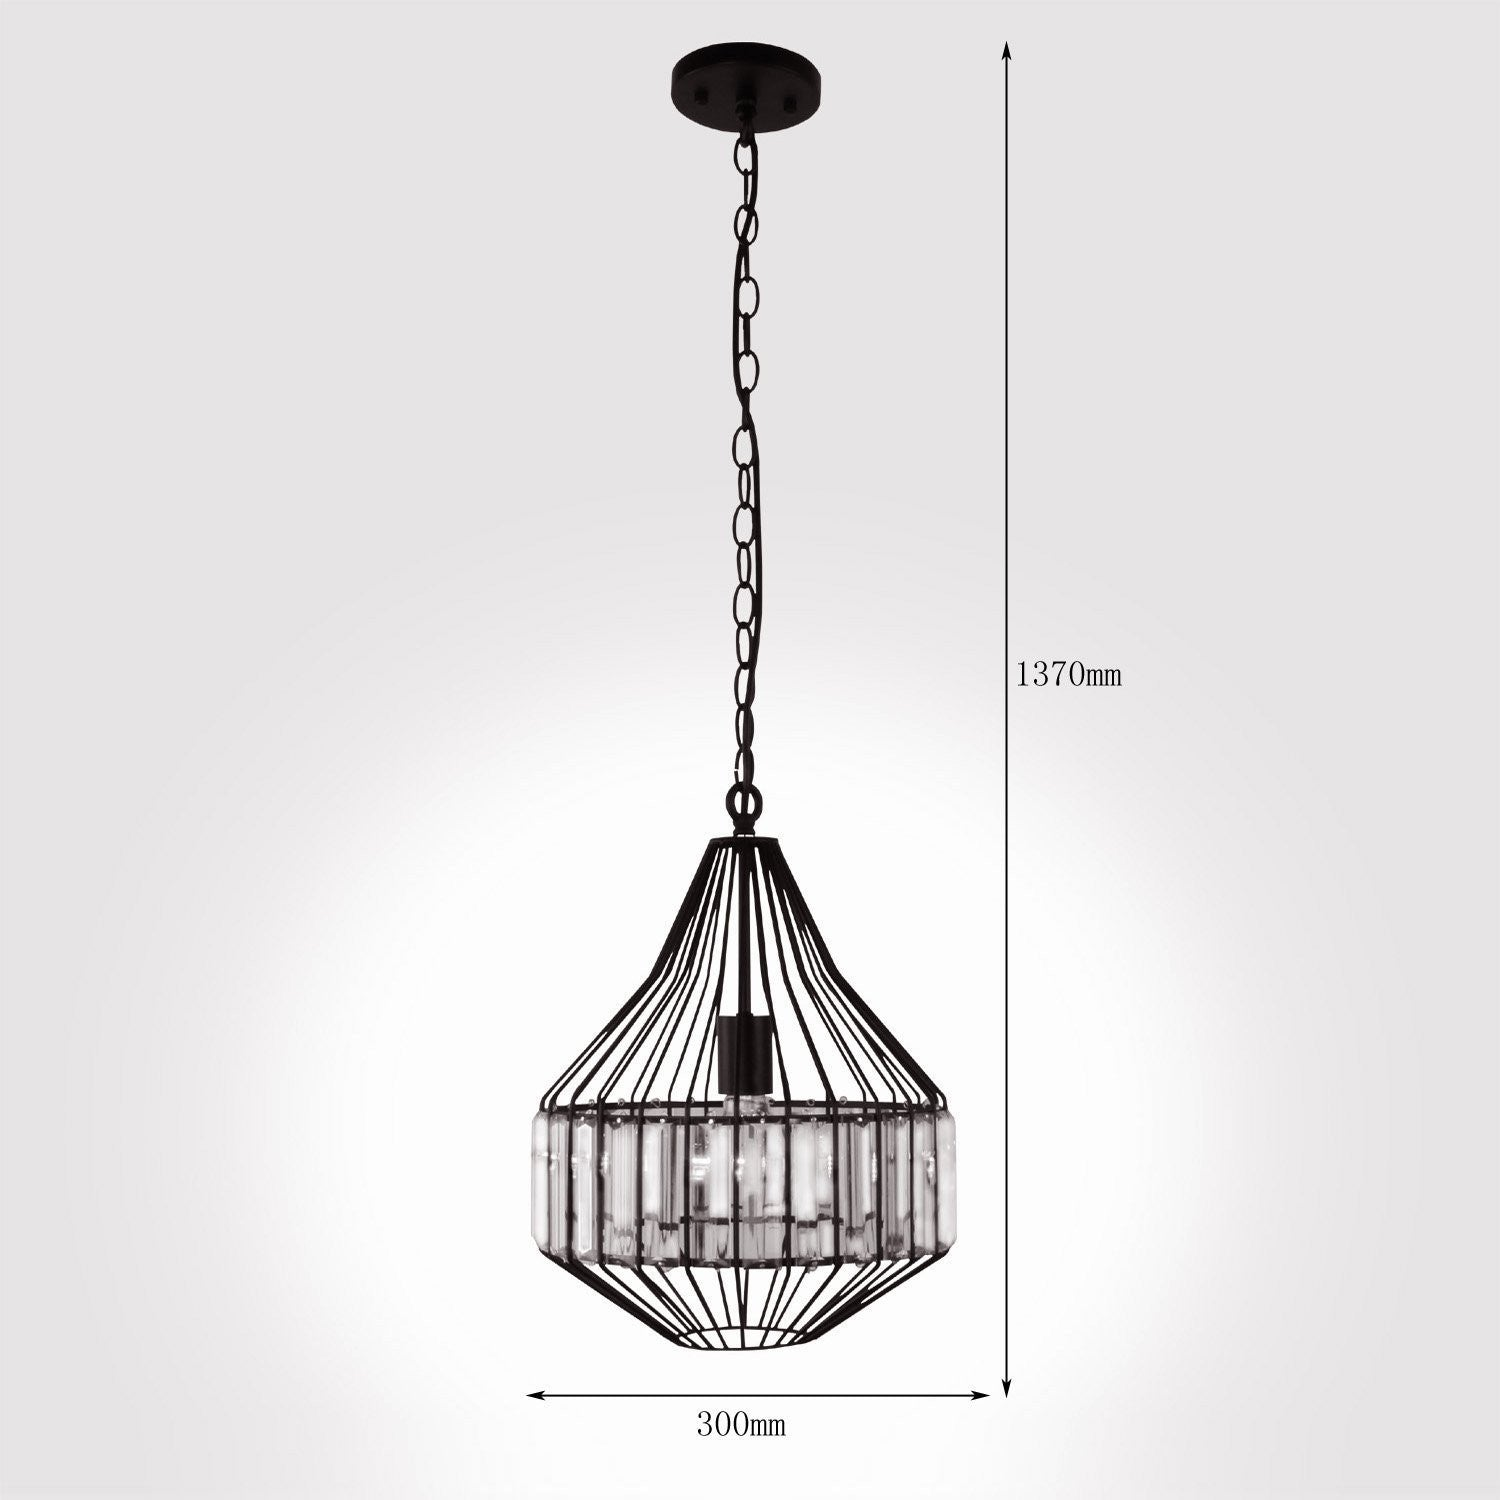 Unitary Brand Antique Steel Art Crystal Metal Cage Dining Room Pendant light with 1 E26 Bulb Socket 40W Painted Finish  sc 1 st  unitarylighting - Shopify & Unitary Brand Antique Steel Art Crystal Metal Cage Dining Room ...